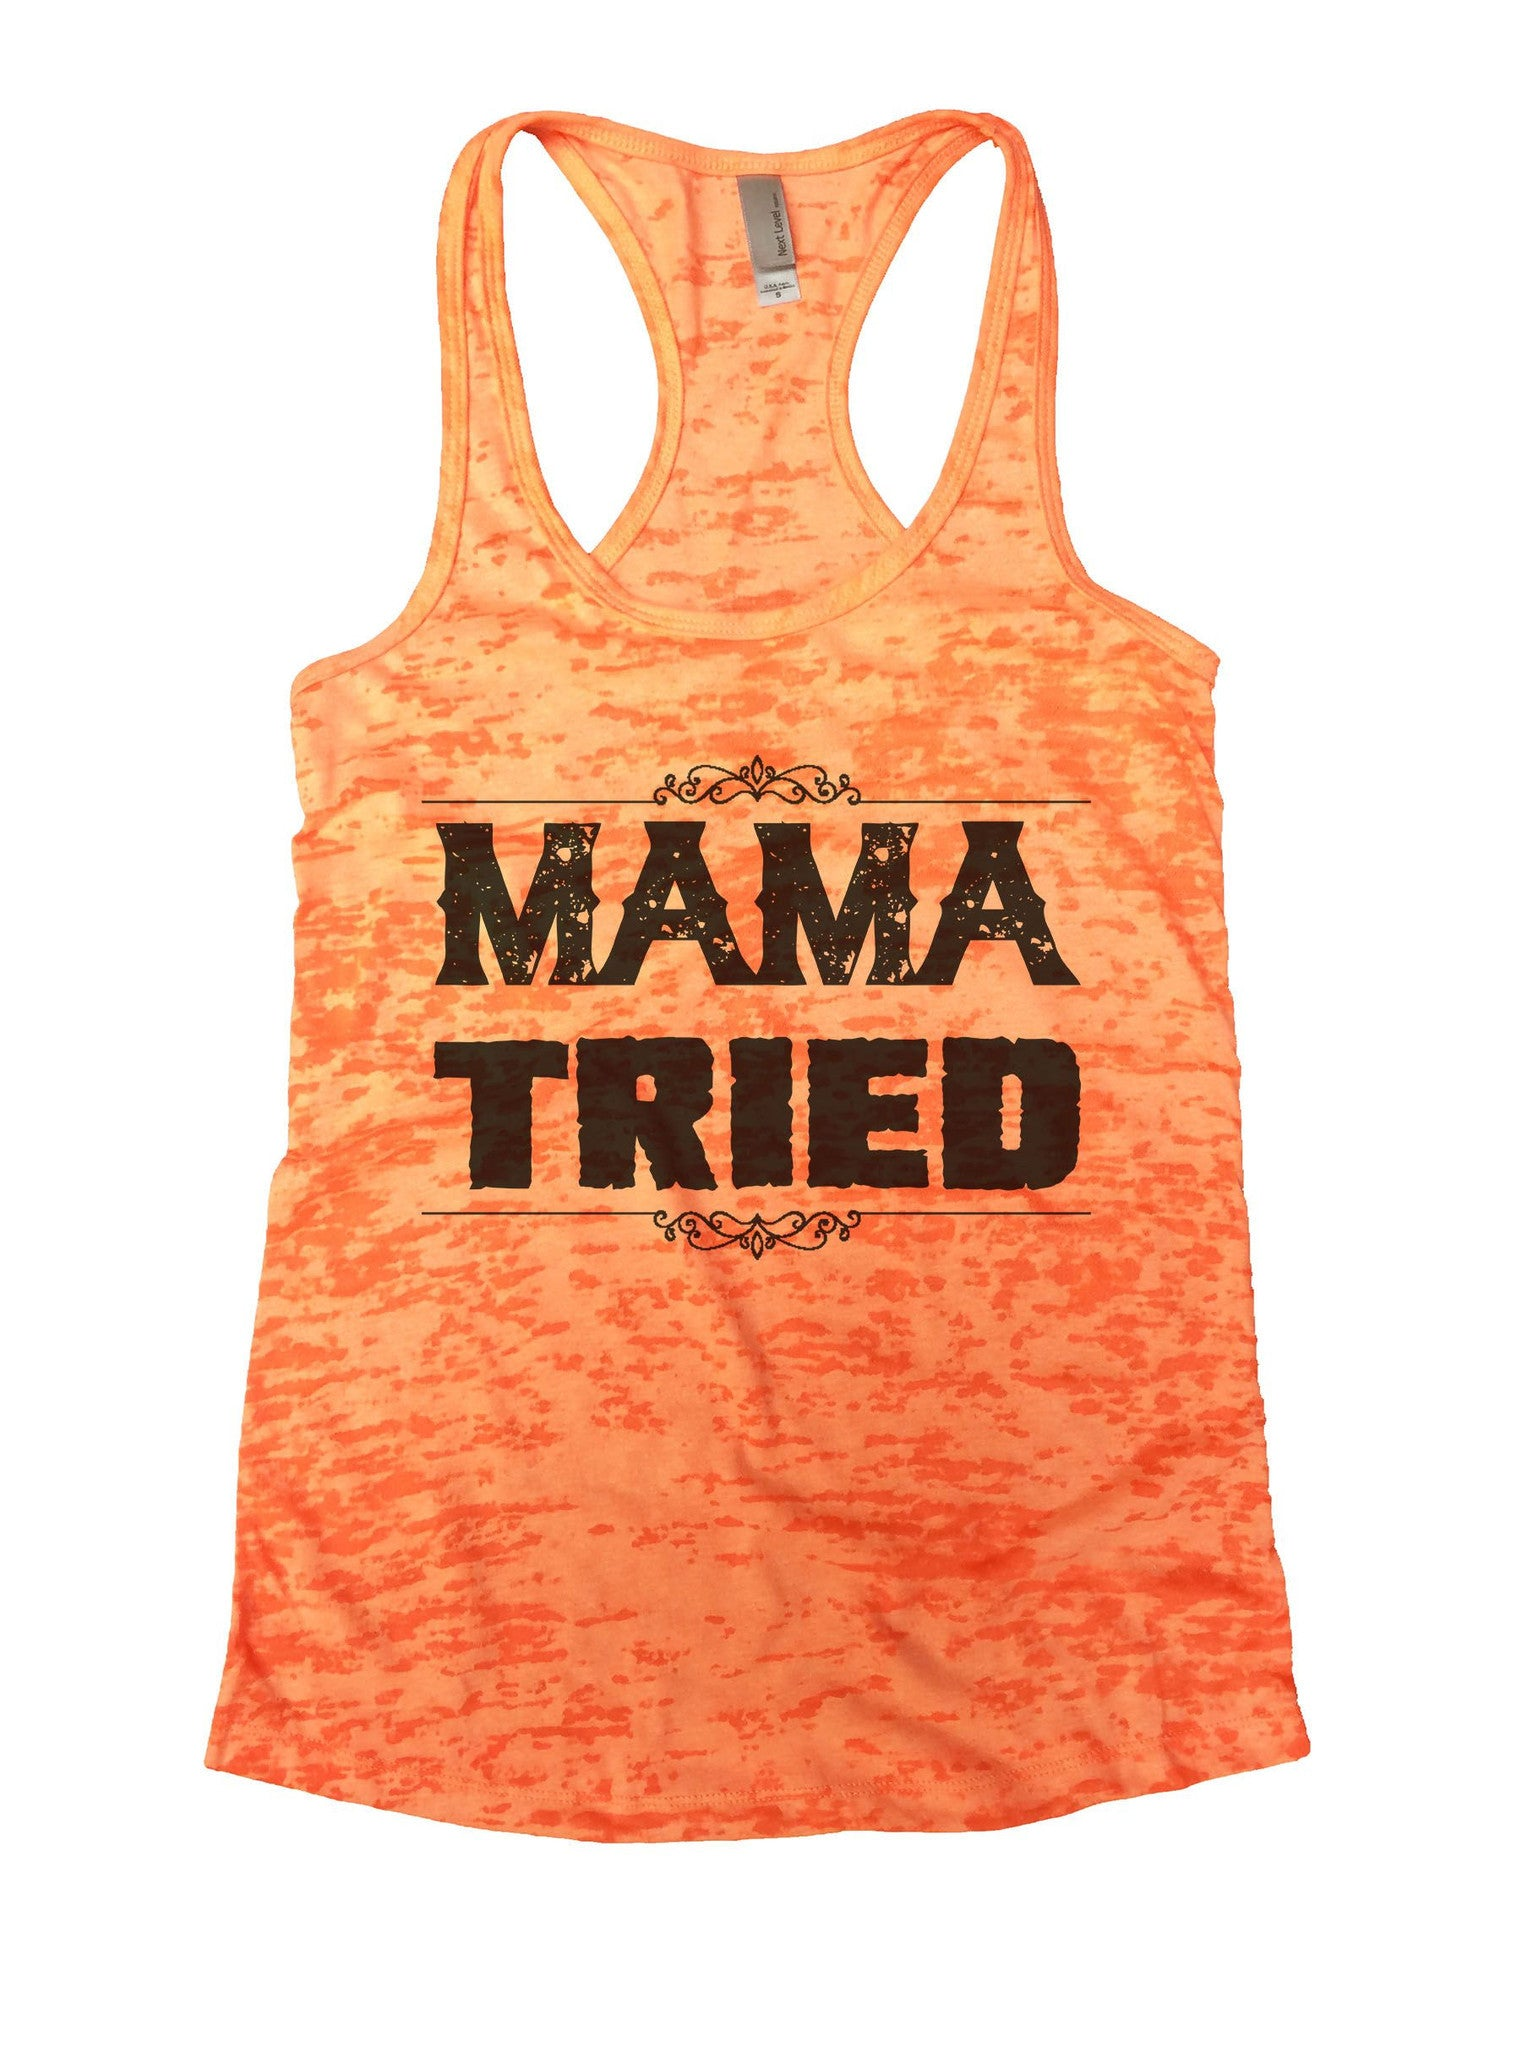 Mama Tried Burnout Tank Top By BurnoutTankTops.com - 886 - Funny Shirts Tank Tops Burnouts and Triblends  - 3